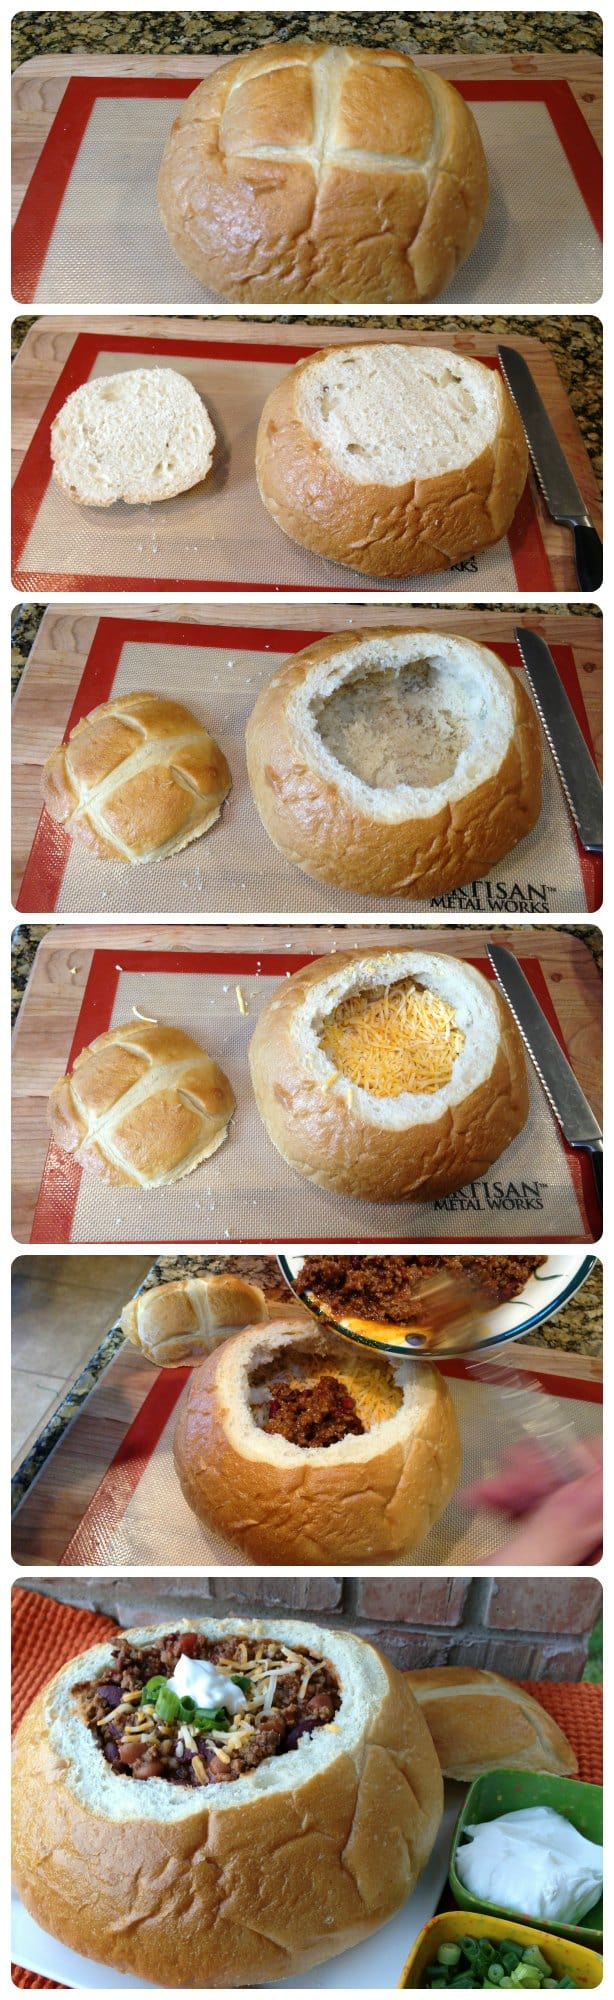 Chili served in a bread bowl